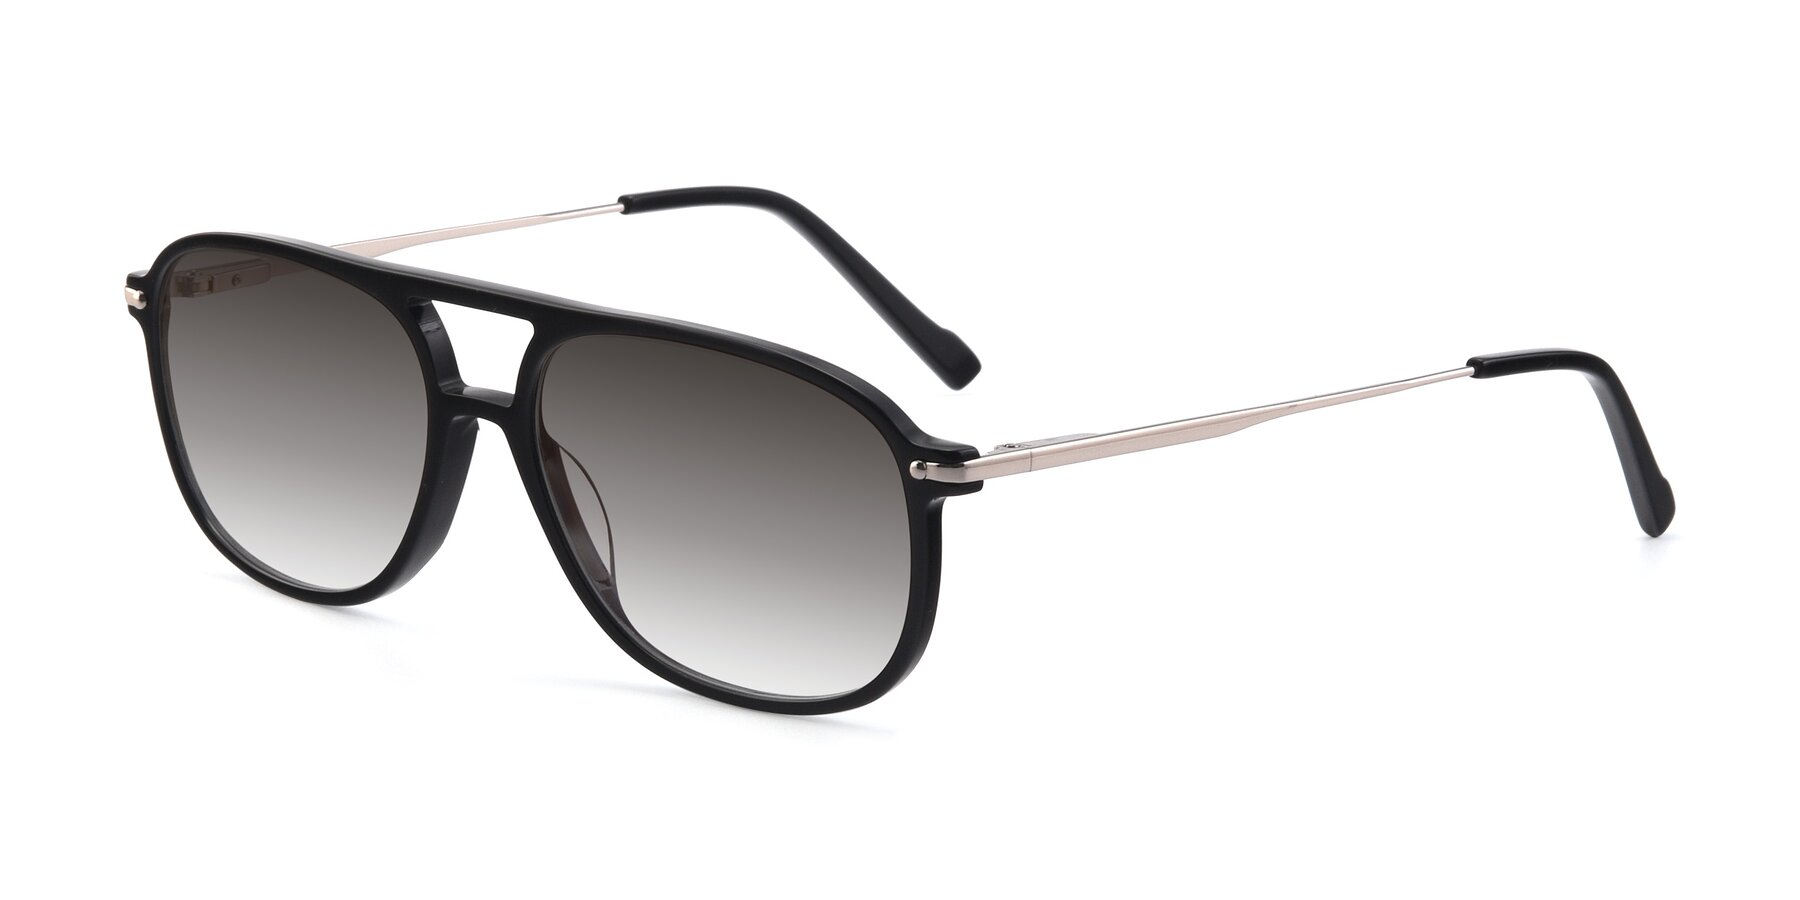 Angle of 17580 in Black with Gray Gradient Lenses